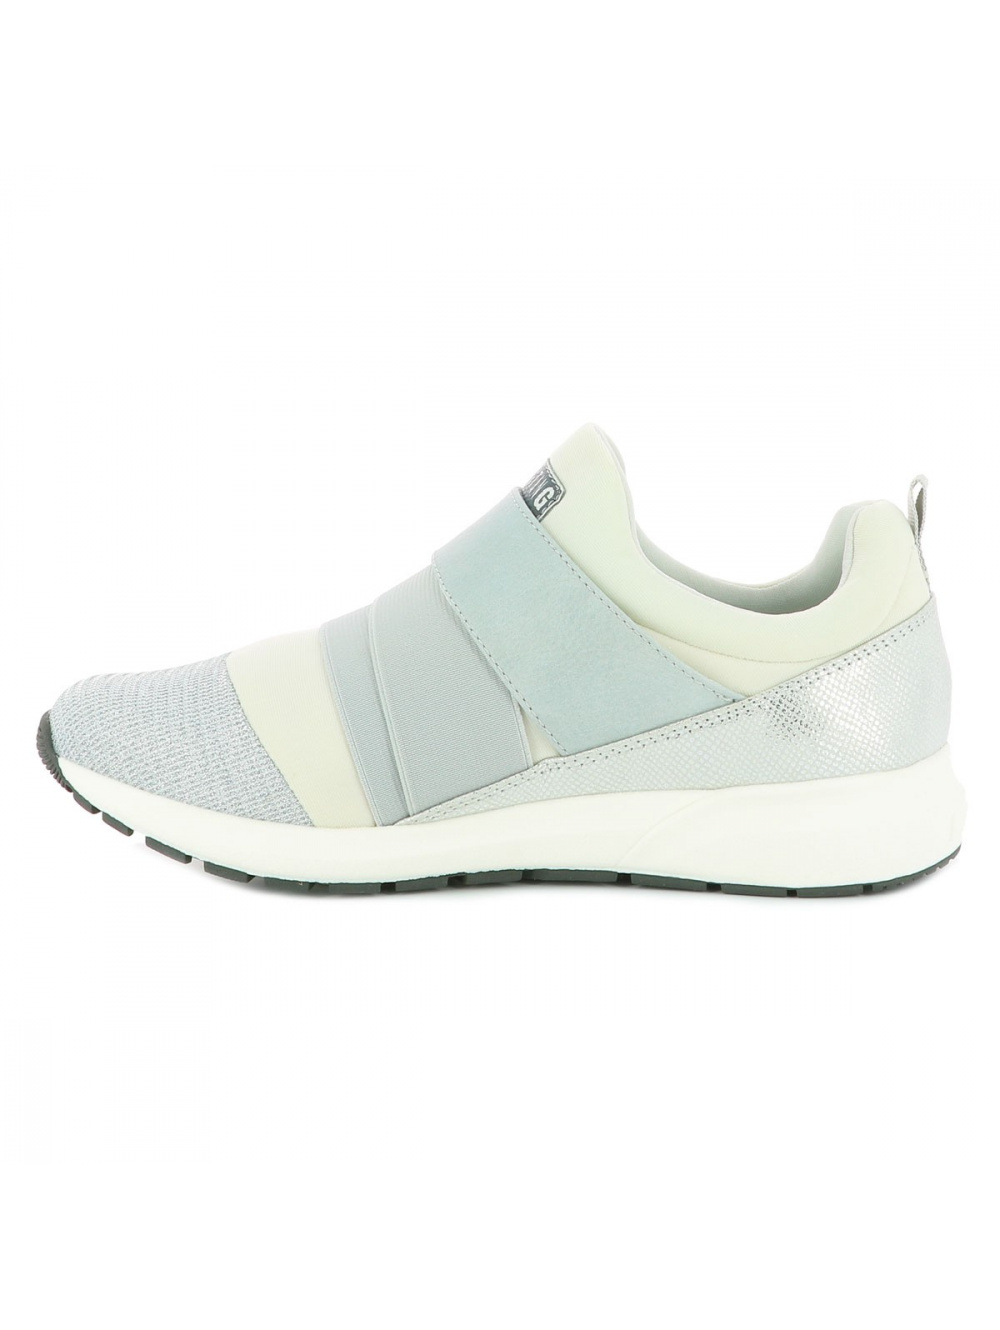 Chaussures femme gris MUSTANG